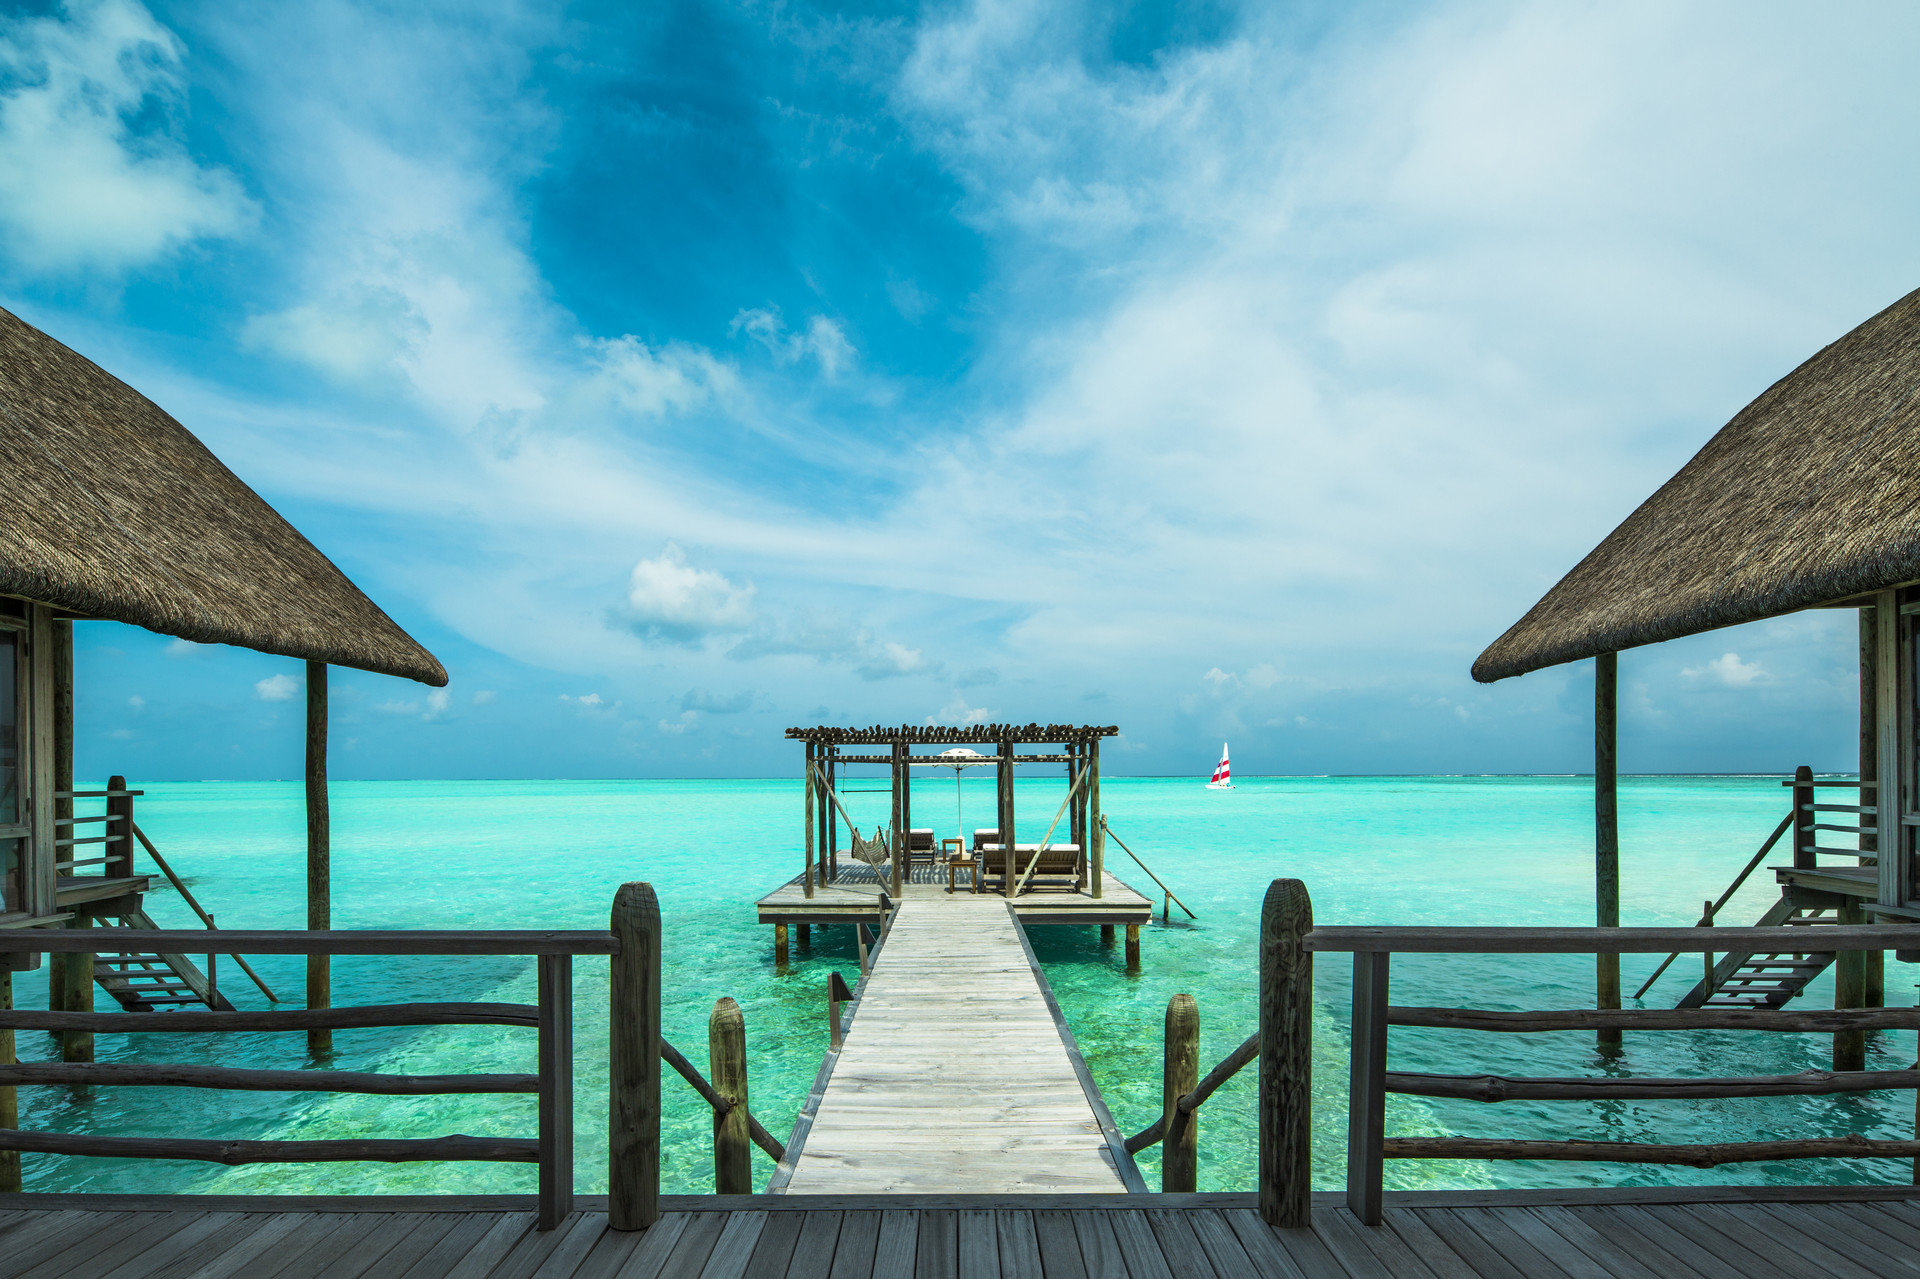 Hotels water outdoor pier sky chair scene umbrella blue Sea Ocean vacation Beach cloud Pool Coast caribbean bay Island empty swimming lined shade